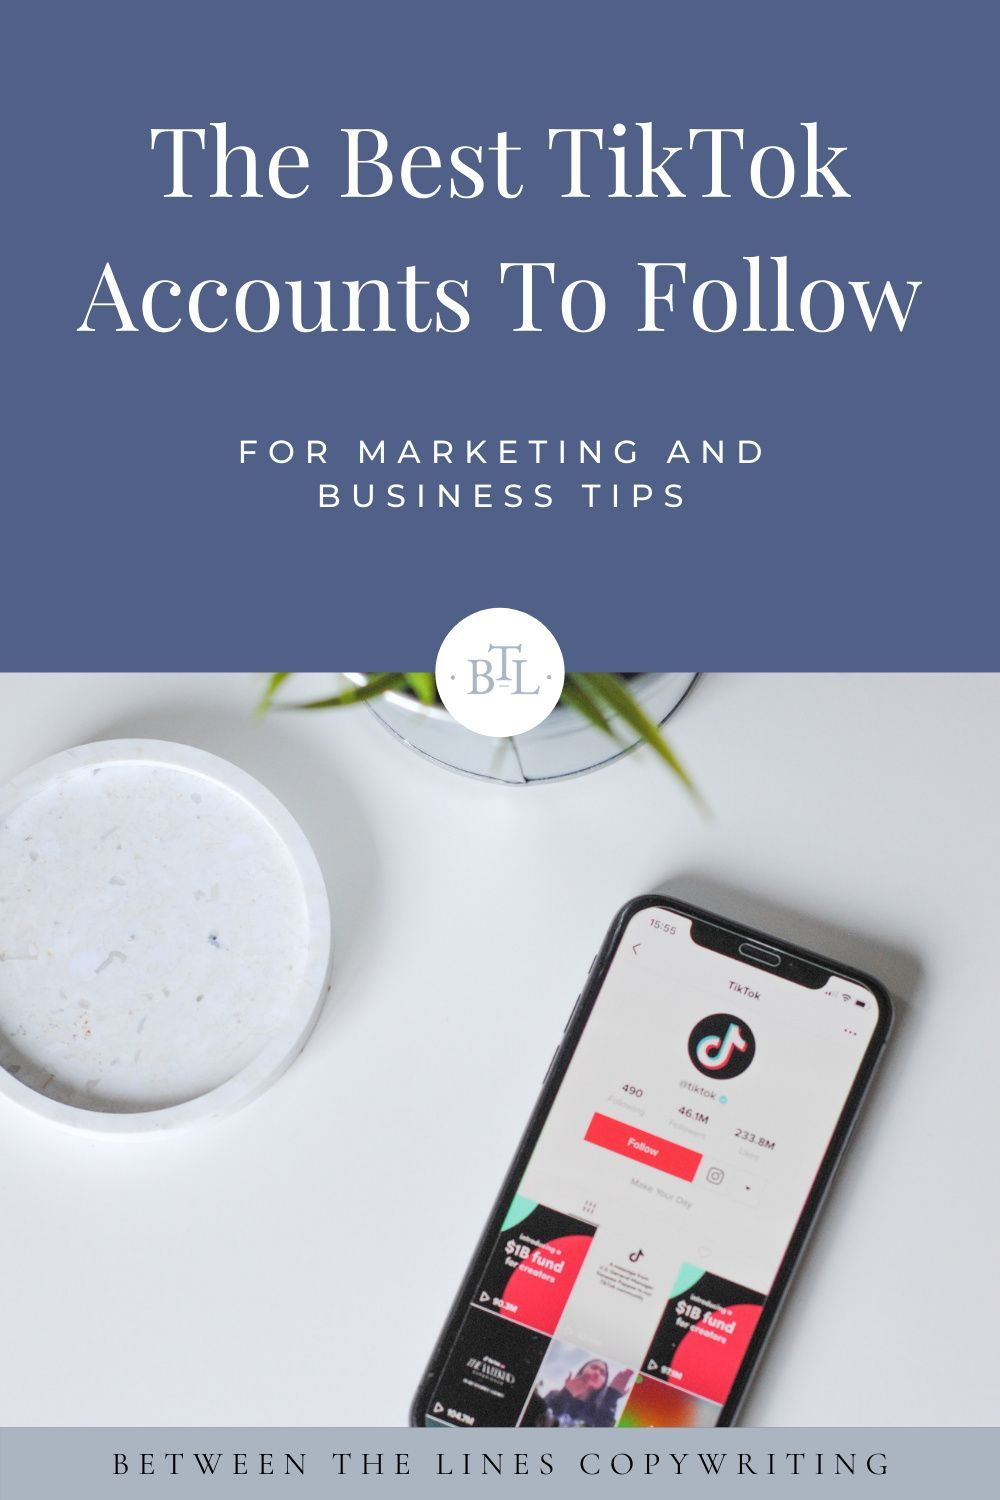 The Best Tiktok Accounts To Follow For Business Between The Lines Copywriting Accounting Business Business Inspiration